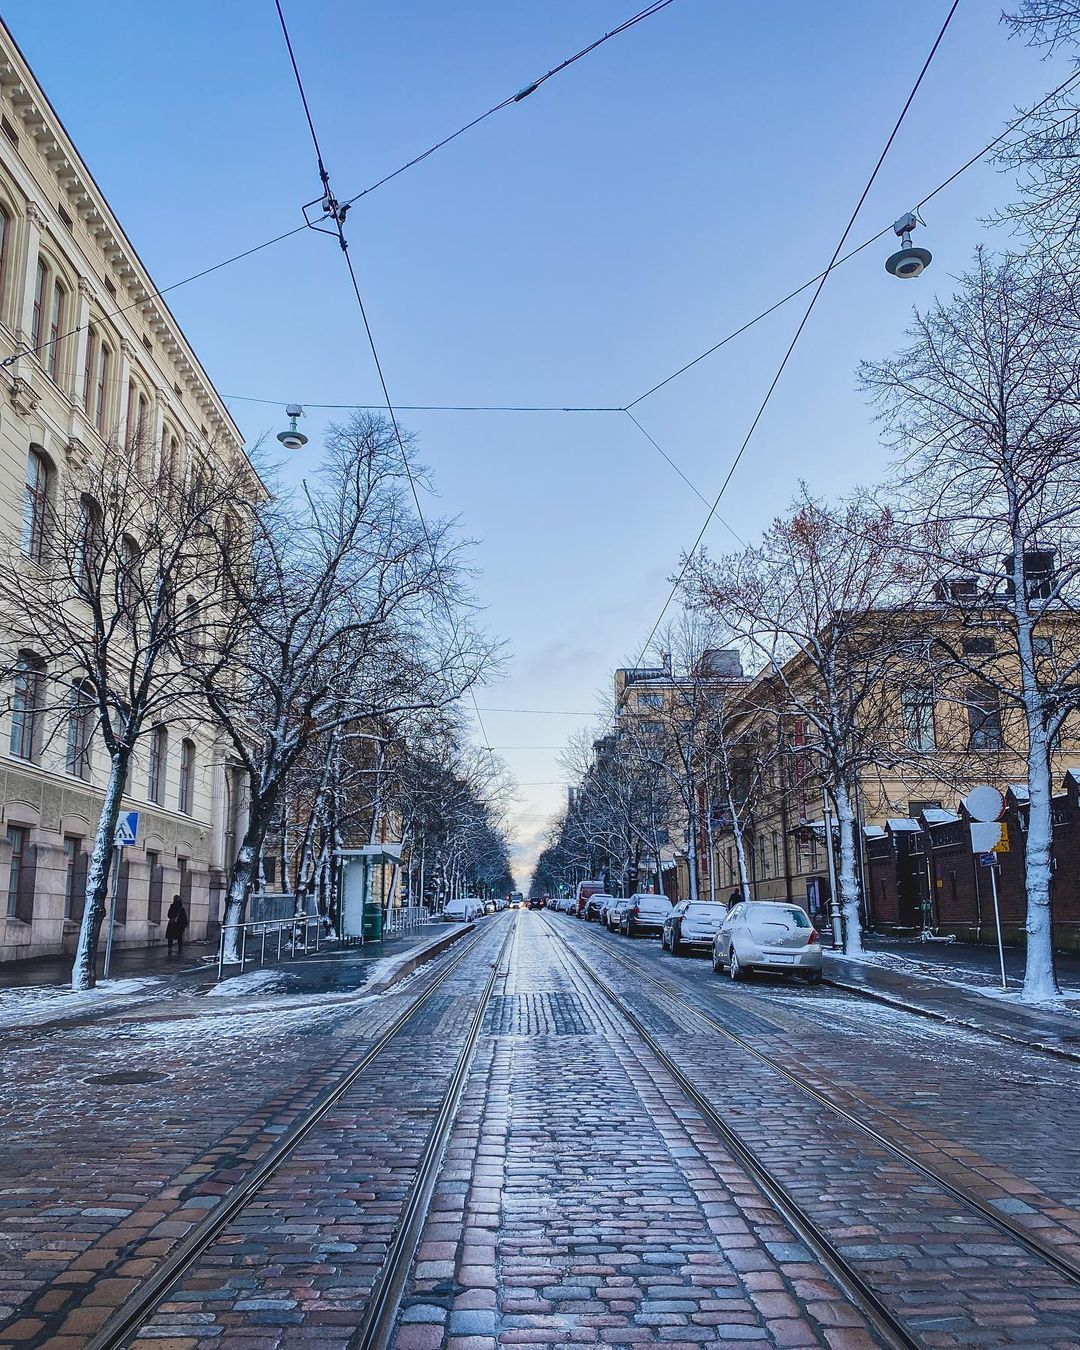 Long view of paved Helsinki street with dusting of snow